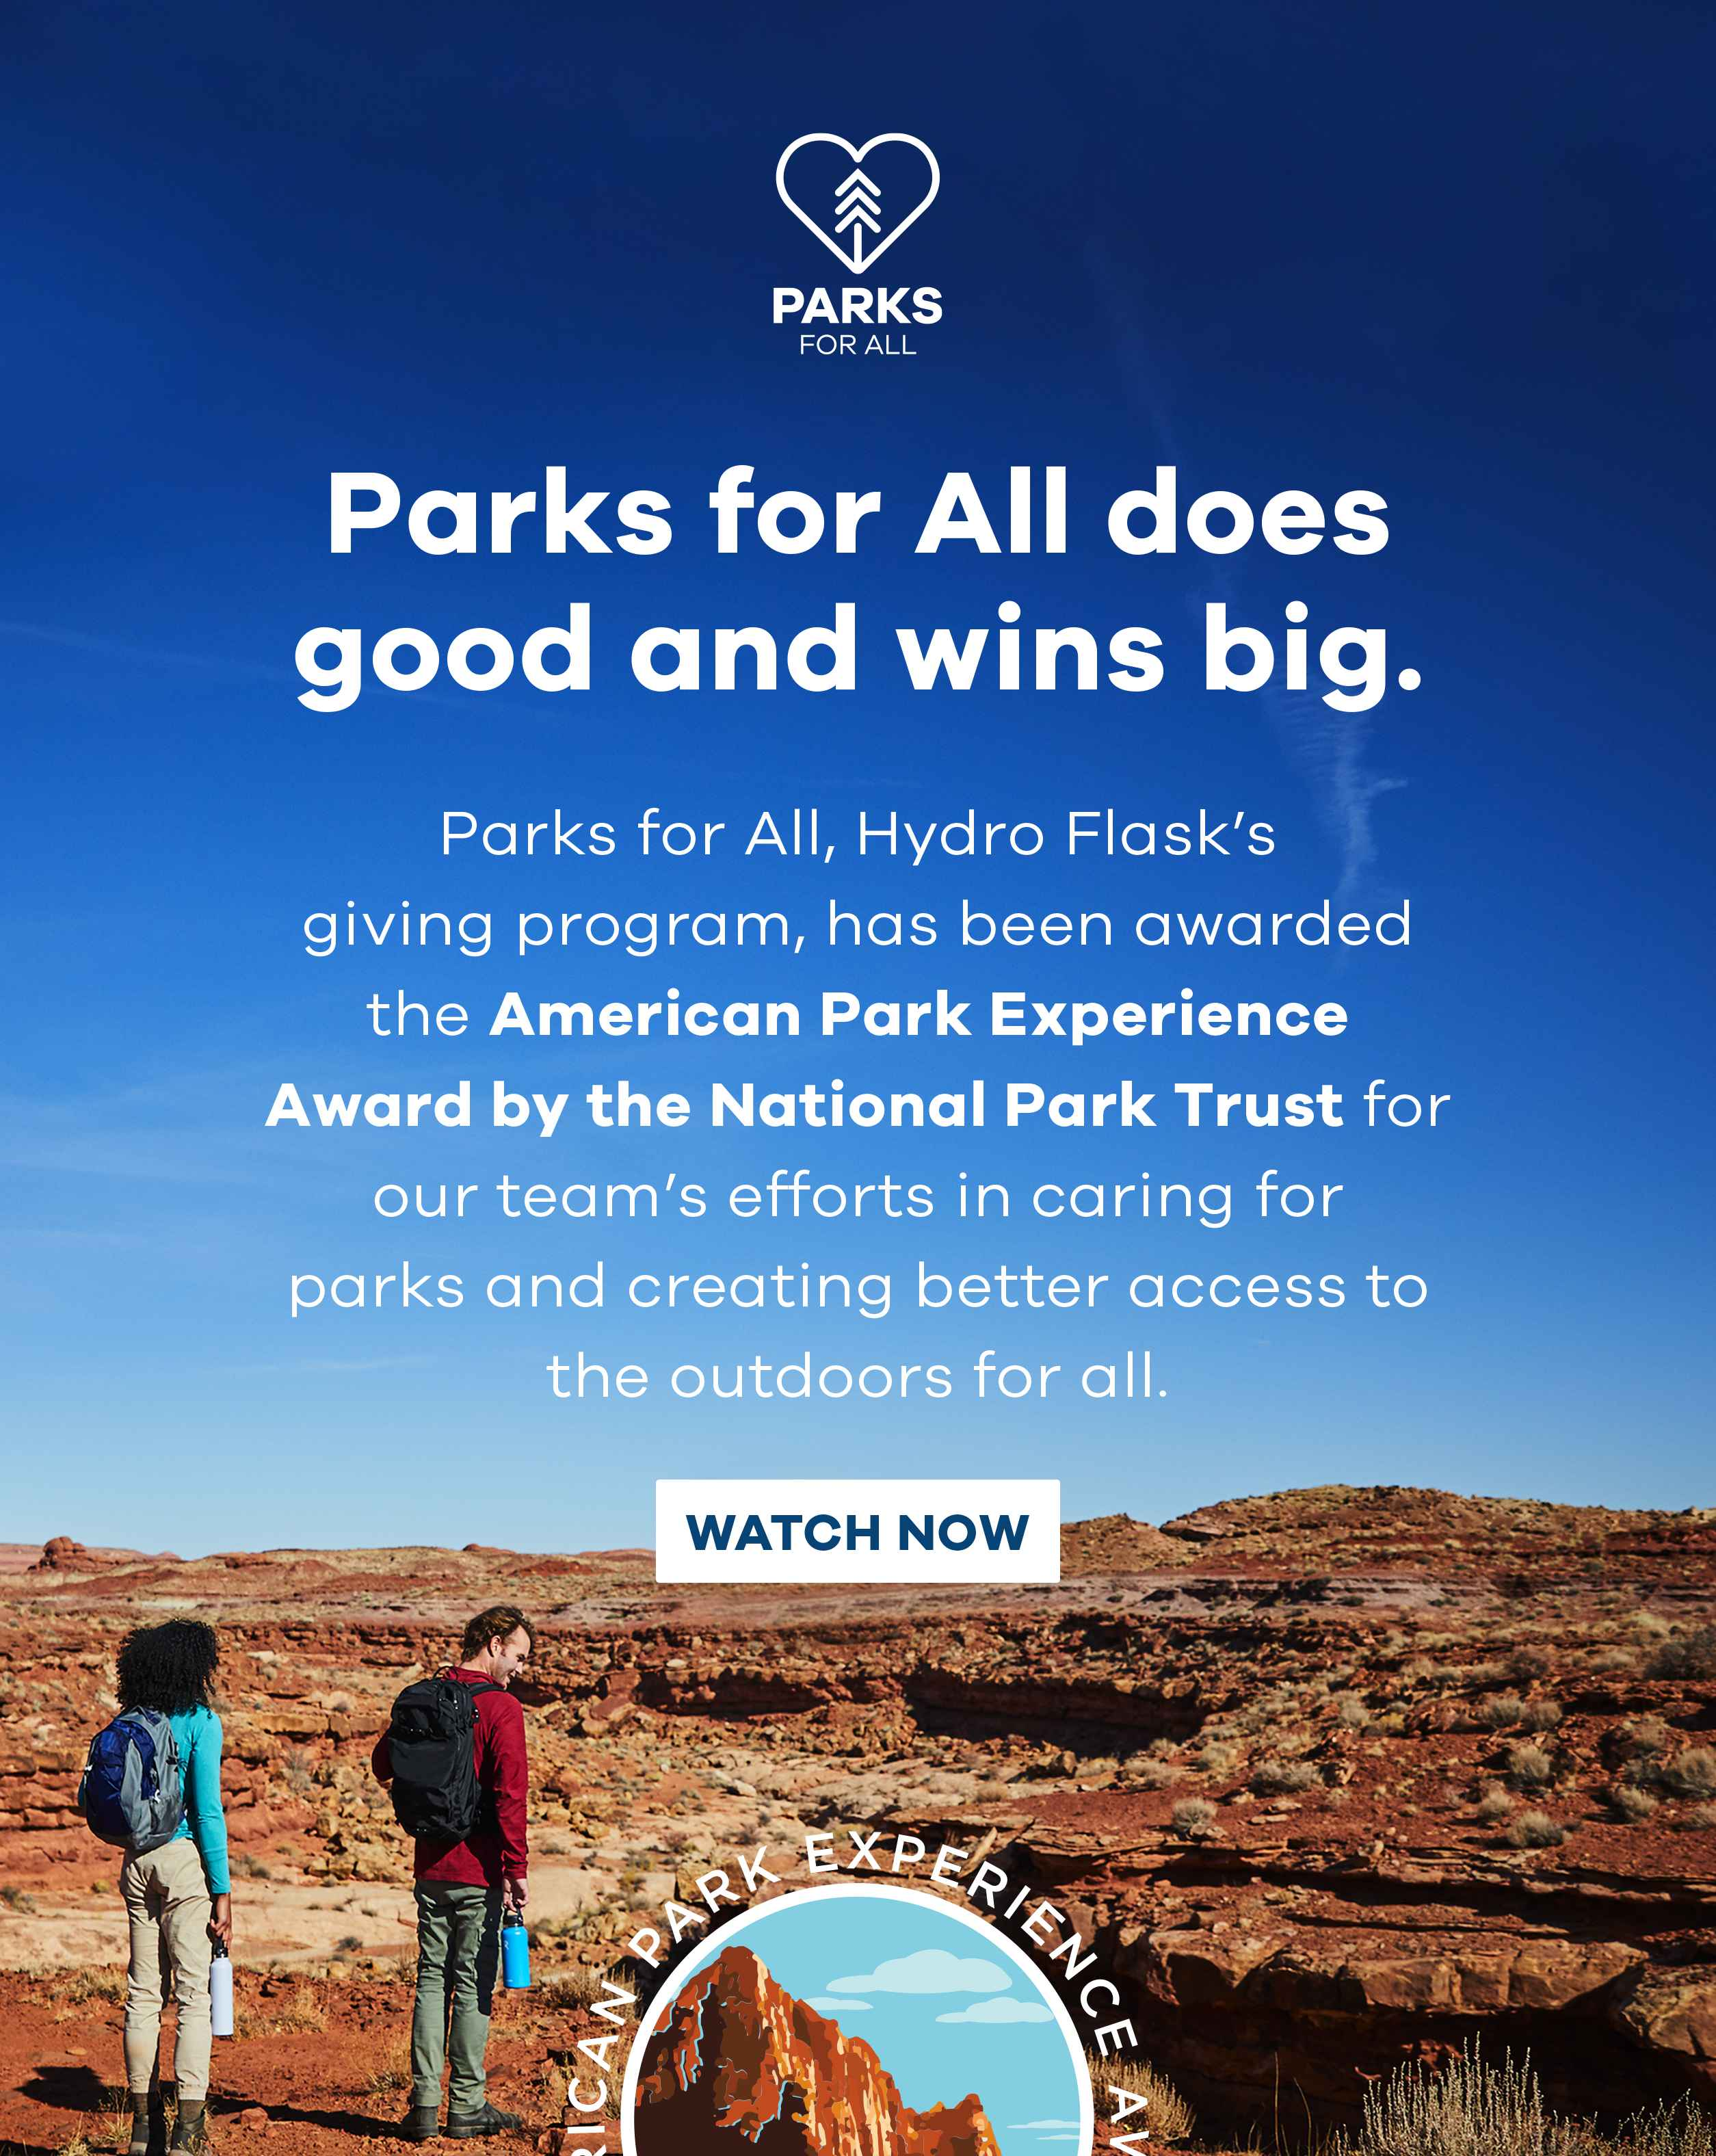 Parks for ALL does good and wins big. Parks for All, Hydro Flask''s giving program, has been awarded the American Park Experience Award by the National Park Trust for our team''s efforts in caring for parks and creating better access to the outdoors for all. Watch Now.